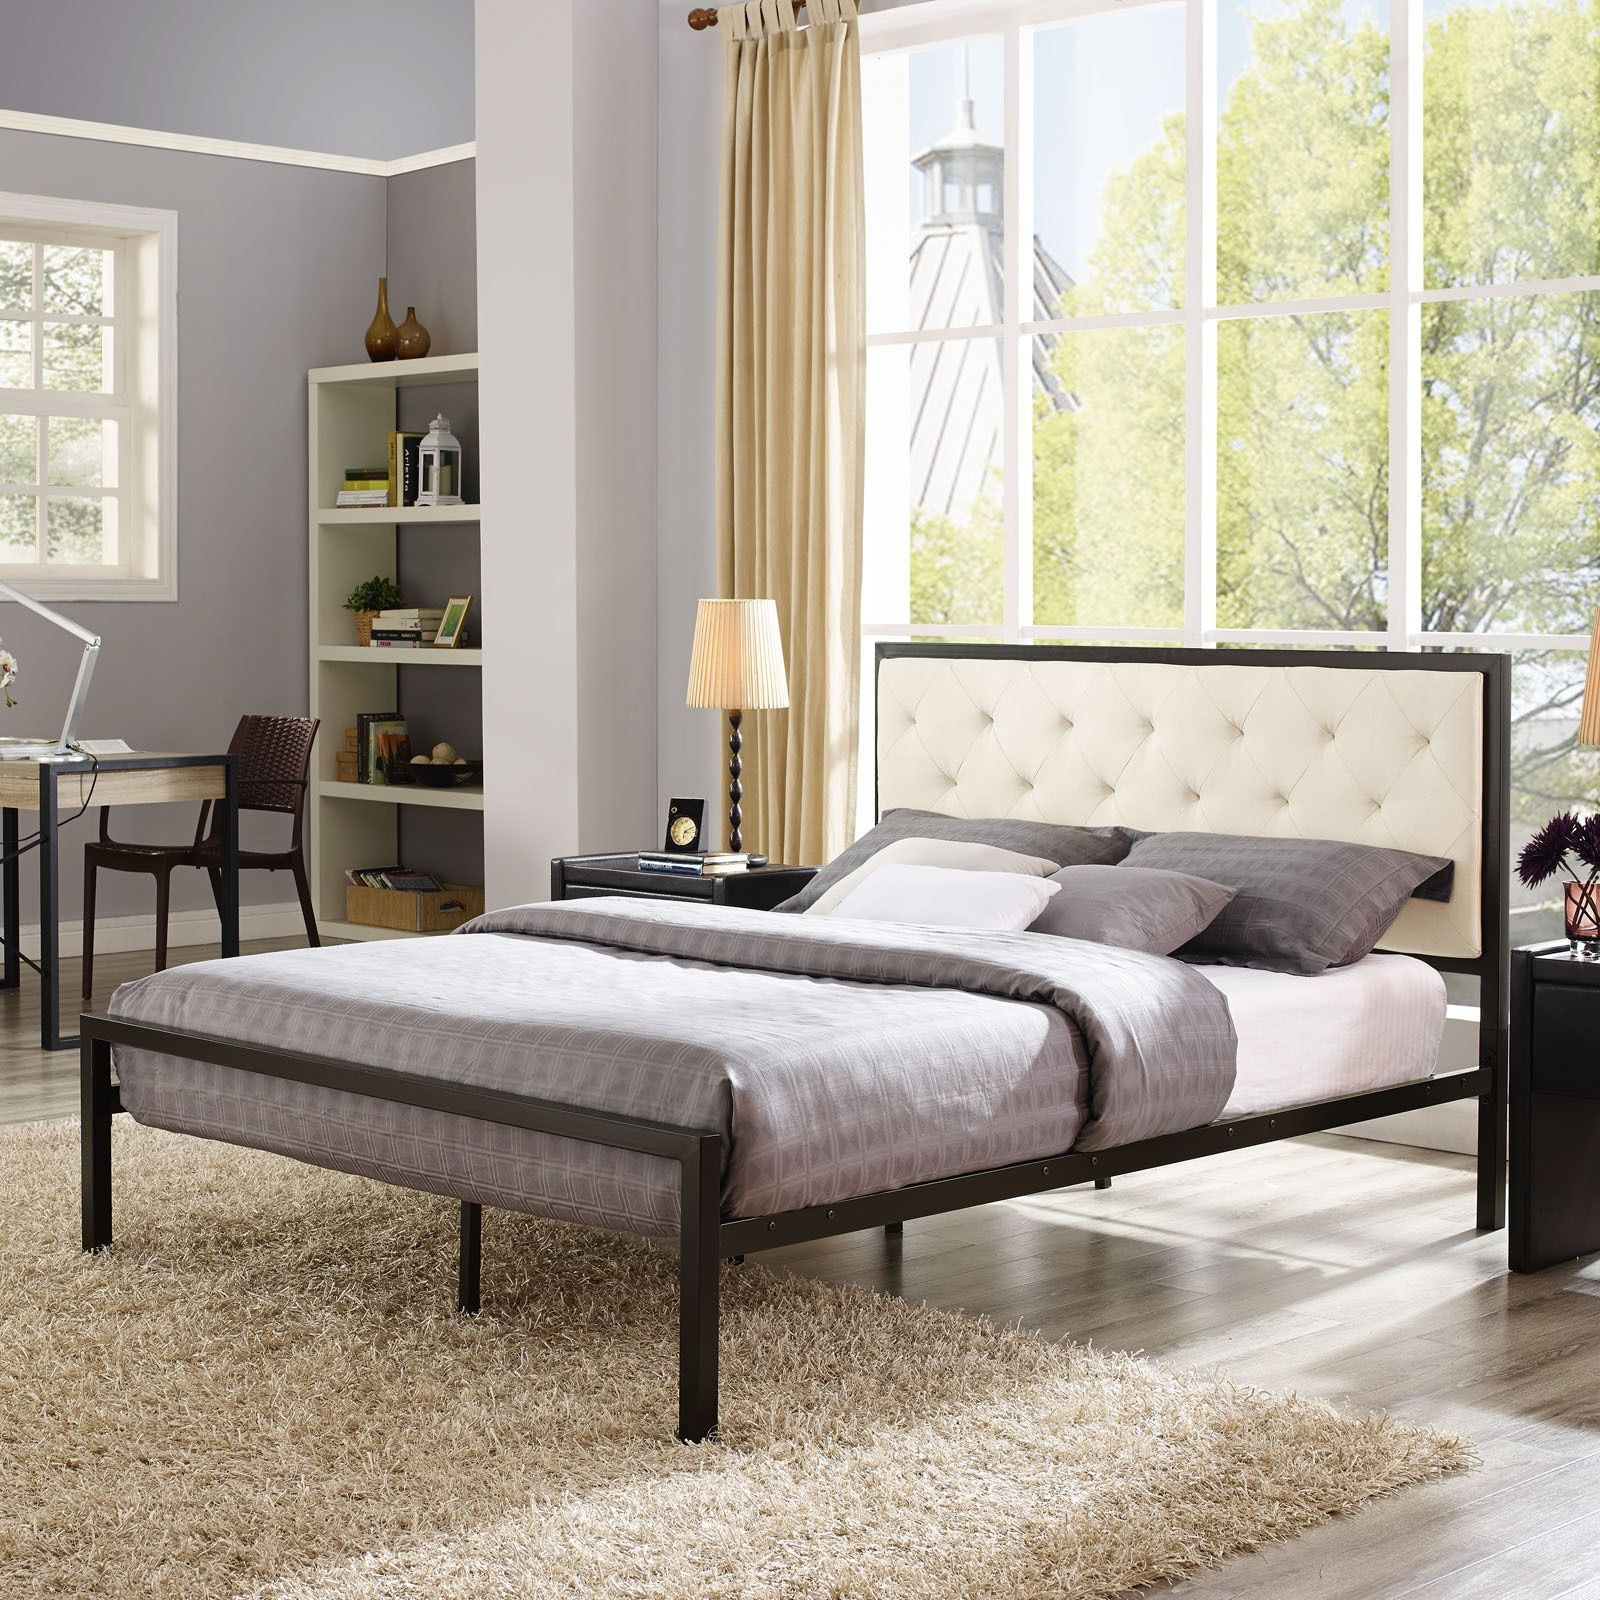 Min Cream Fabric Platform Bed Frame with 10inch Queen